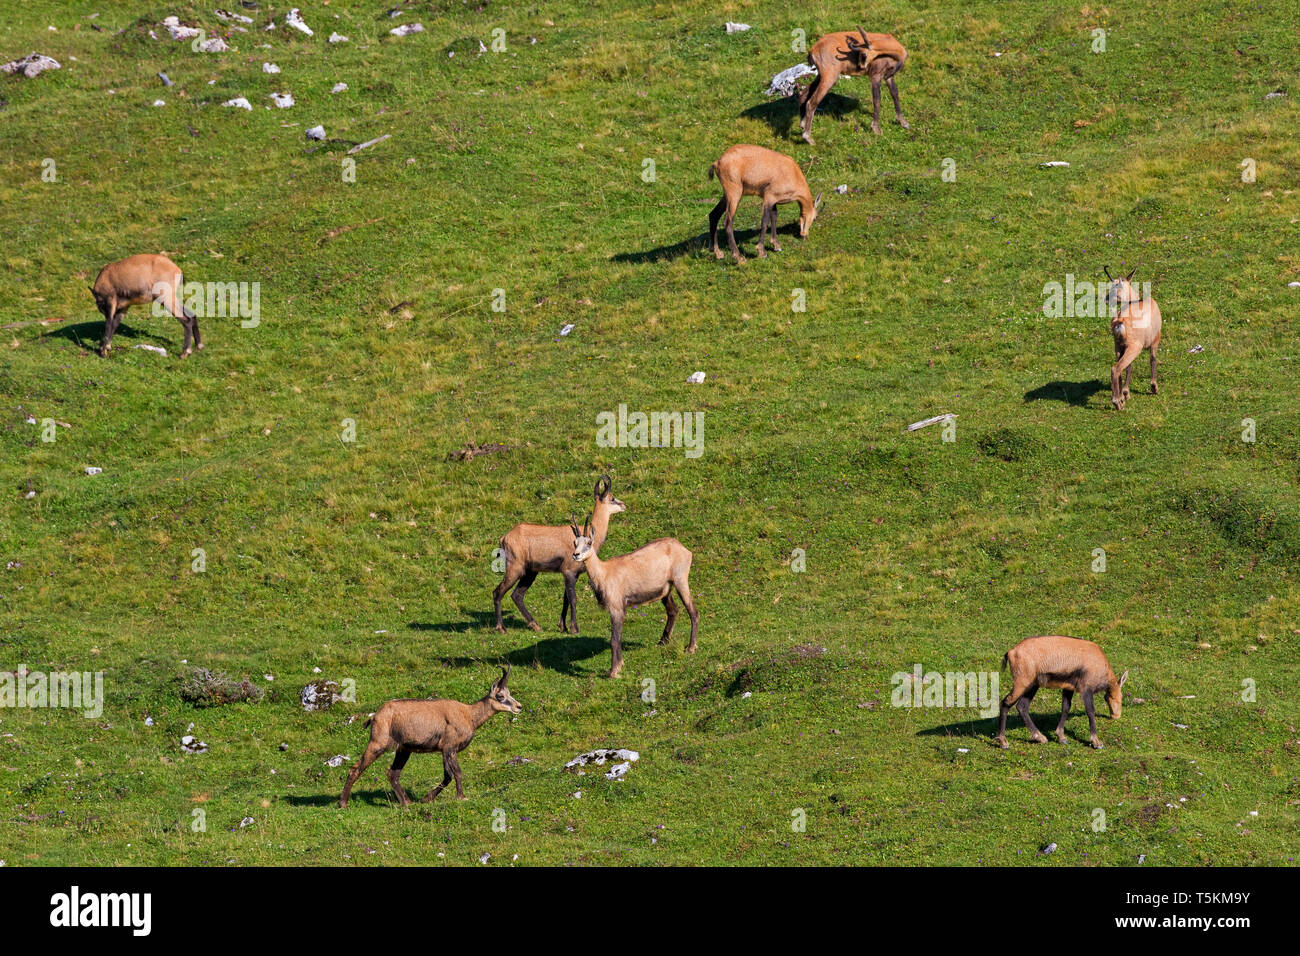 Chamois (Rupicapra rupicapra) herd foraging on mountain meadow / Alpine pasture in summer in the European Alps Stock Photo